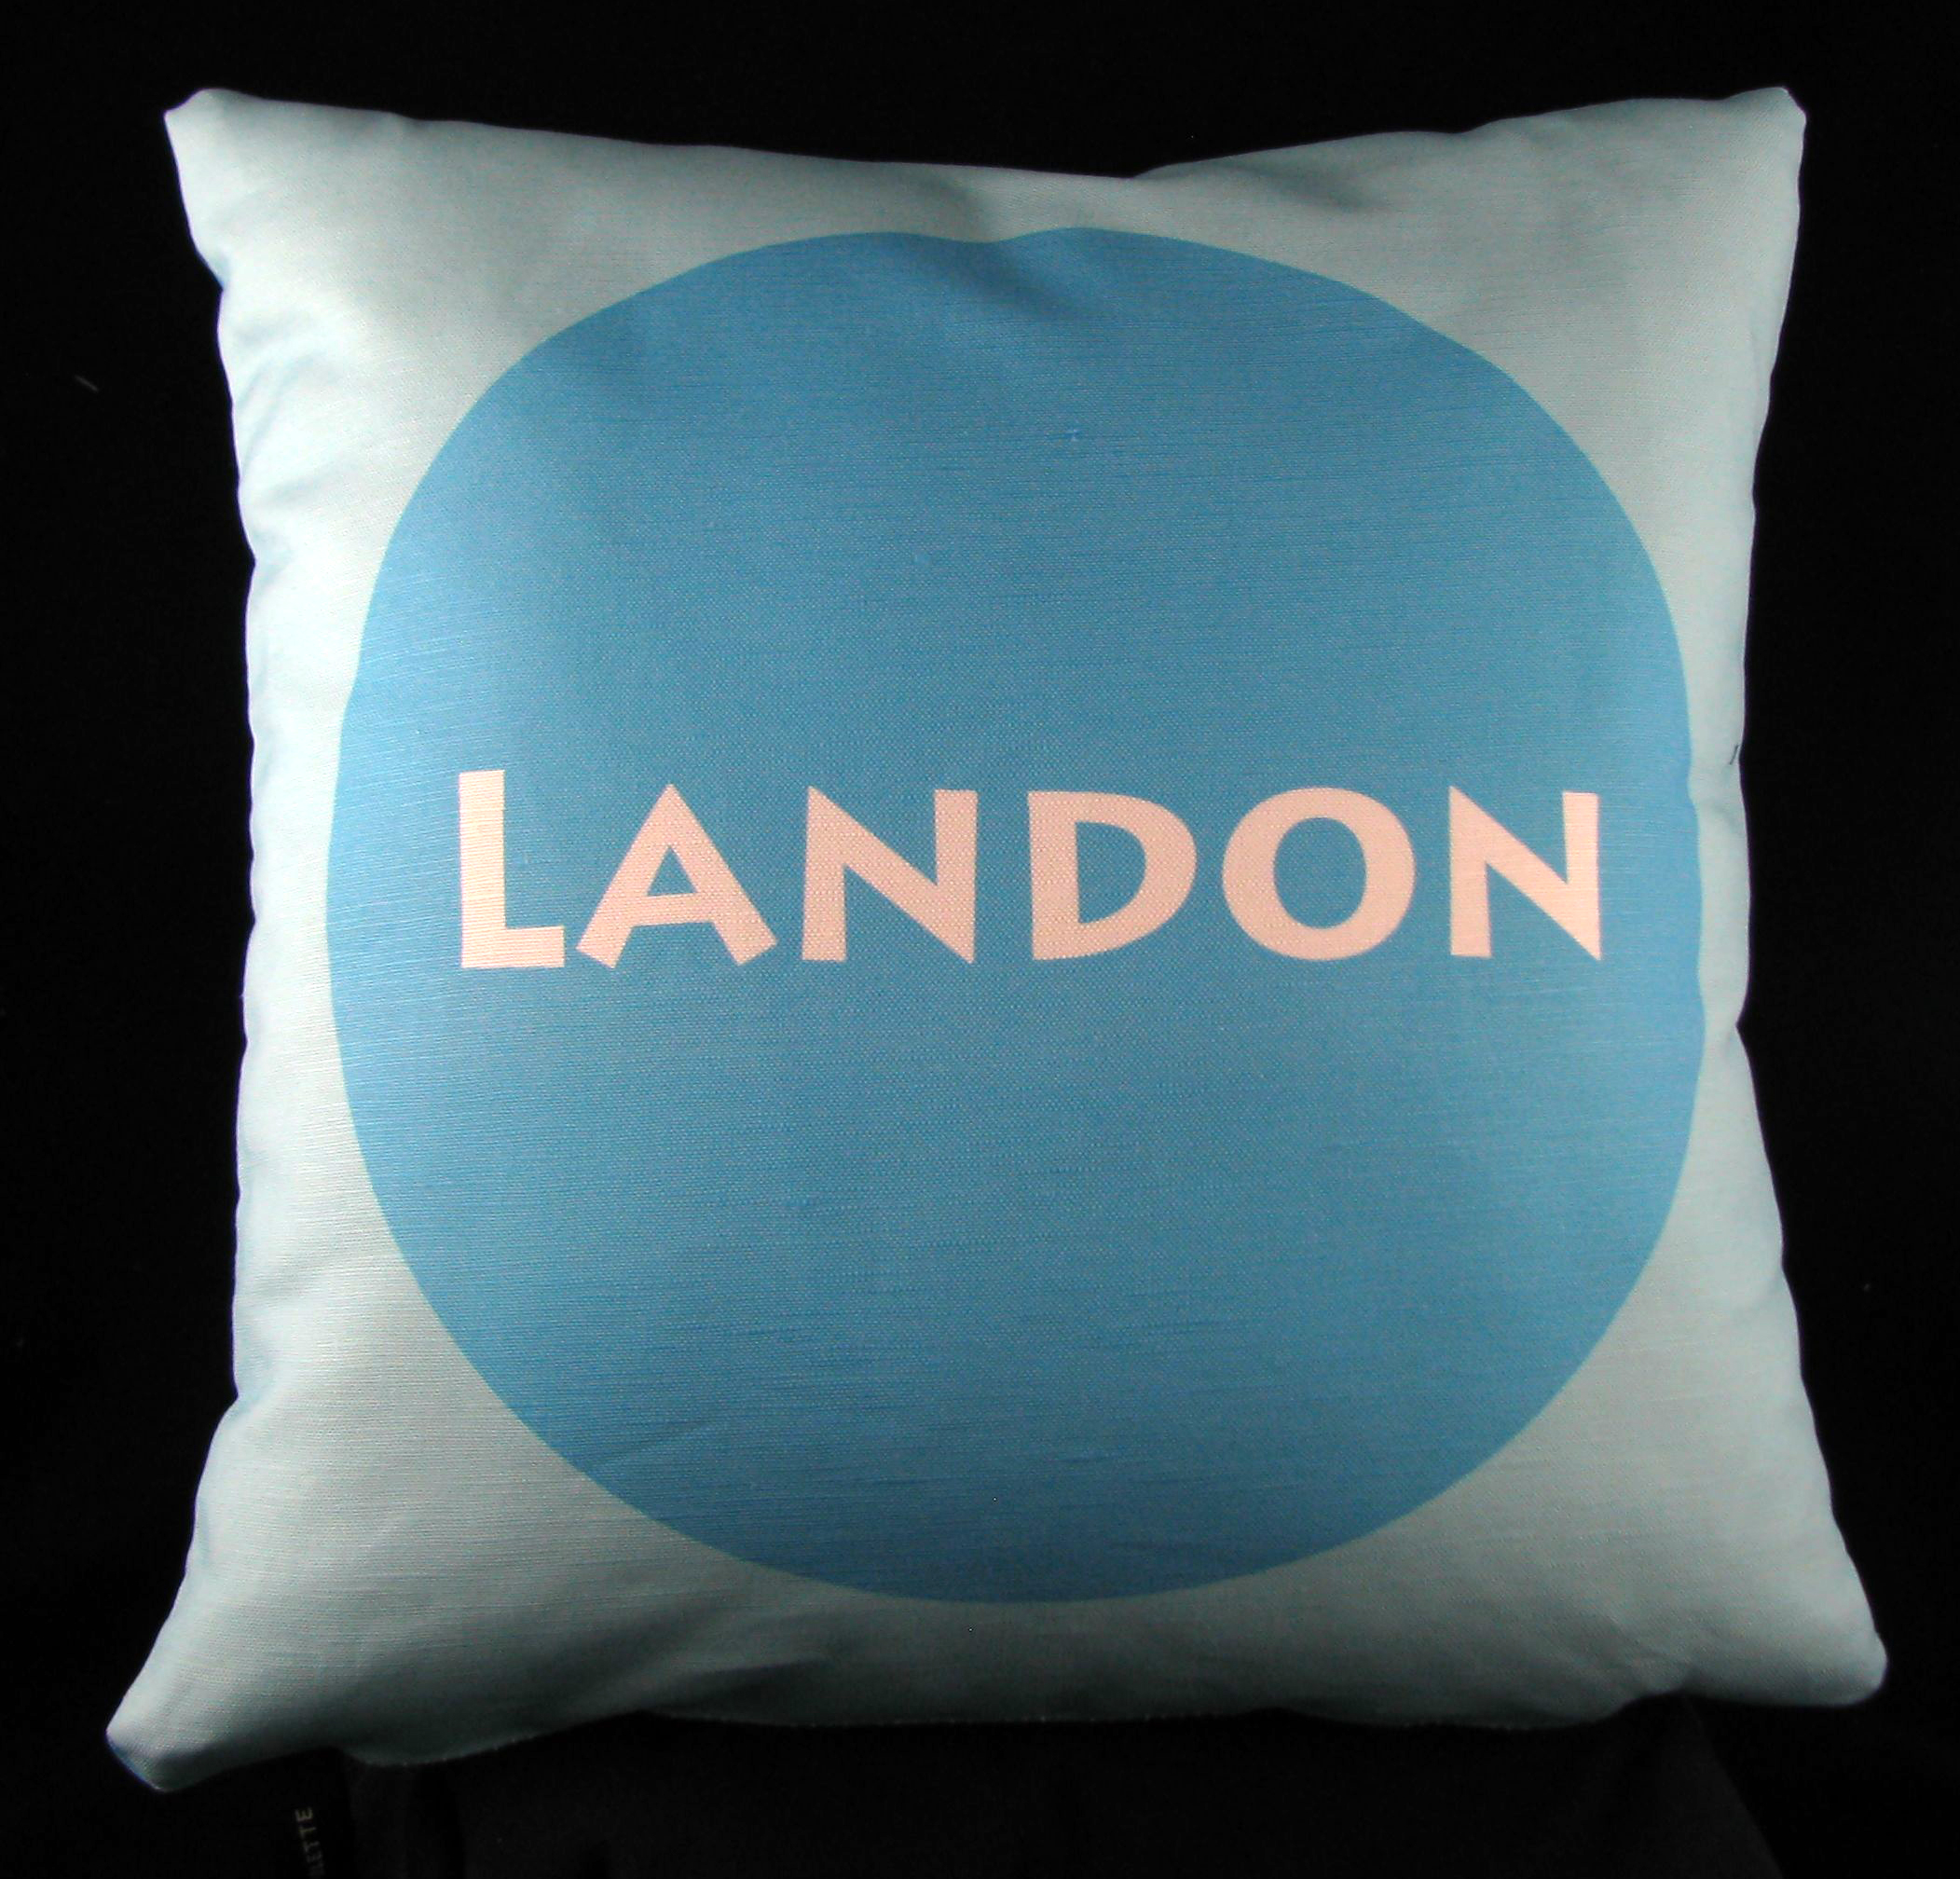 Center Circle Personalized Pillow Available in both cotton and minky.